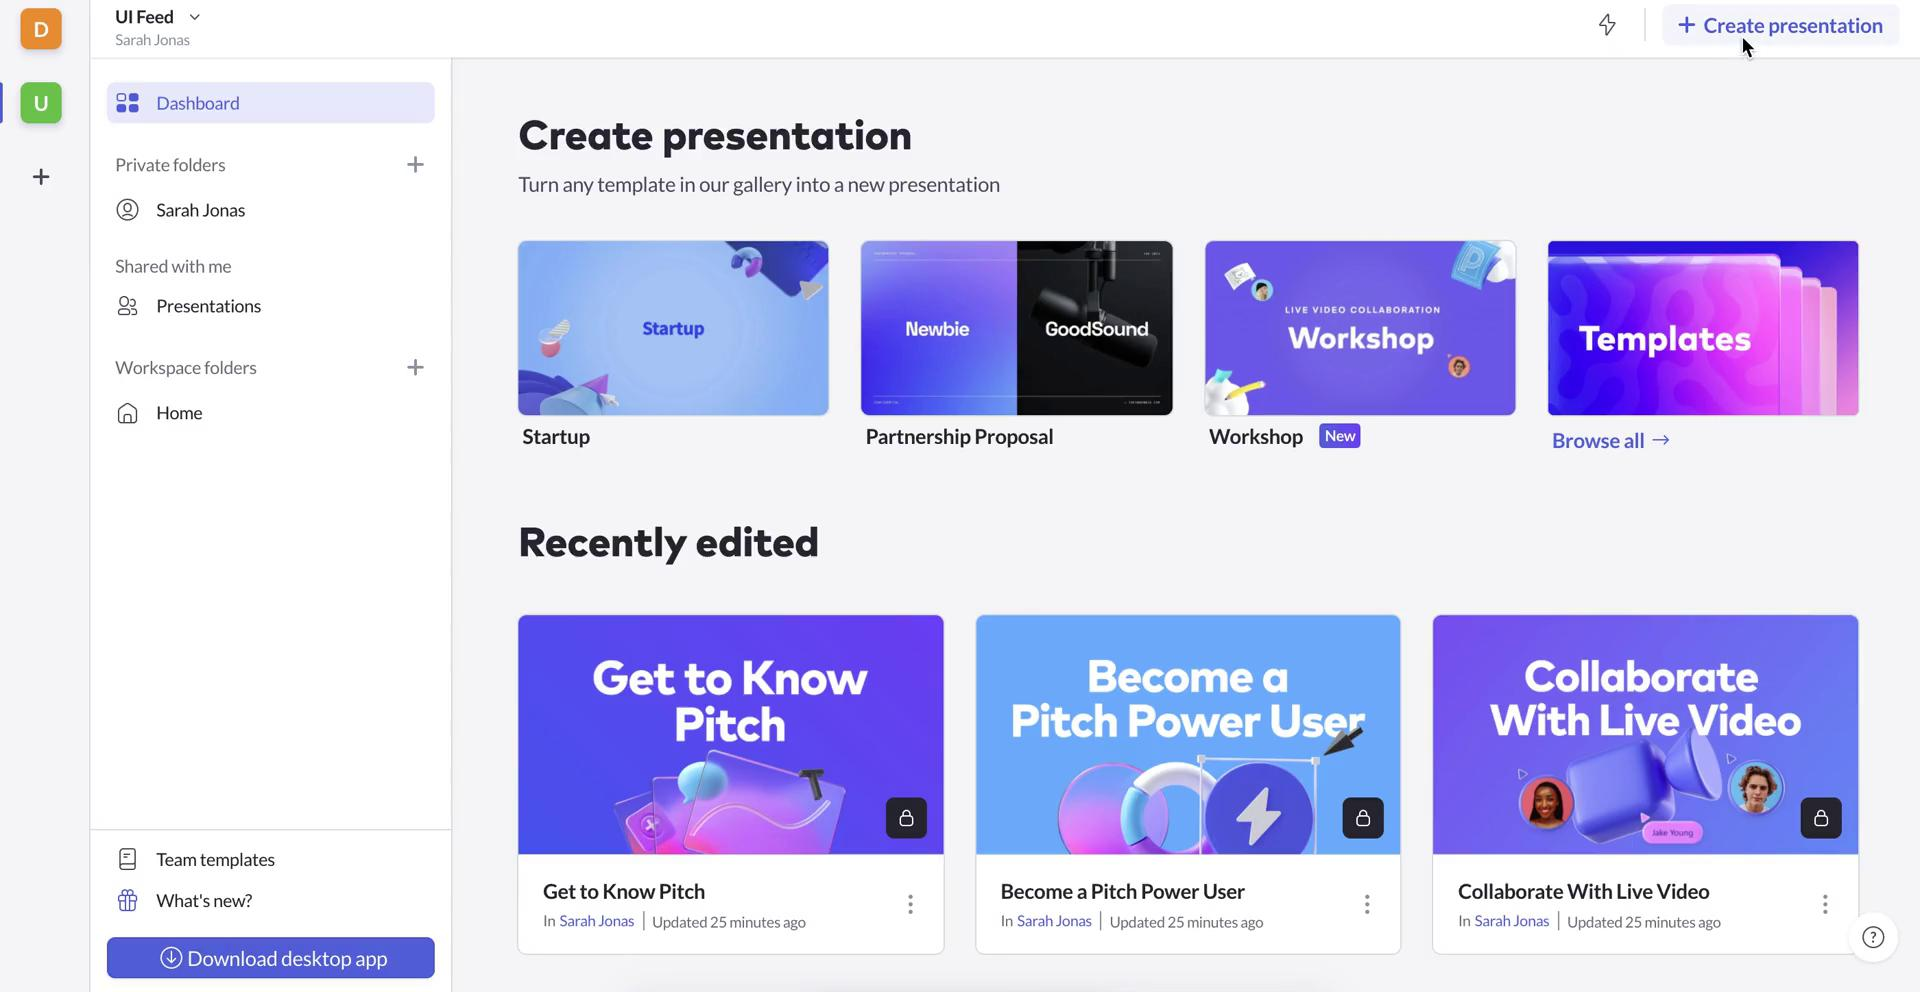 Creating a presentation on Pitch video screenshot